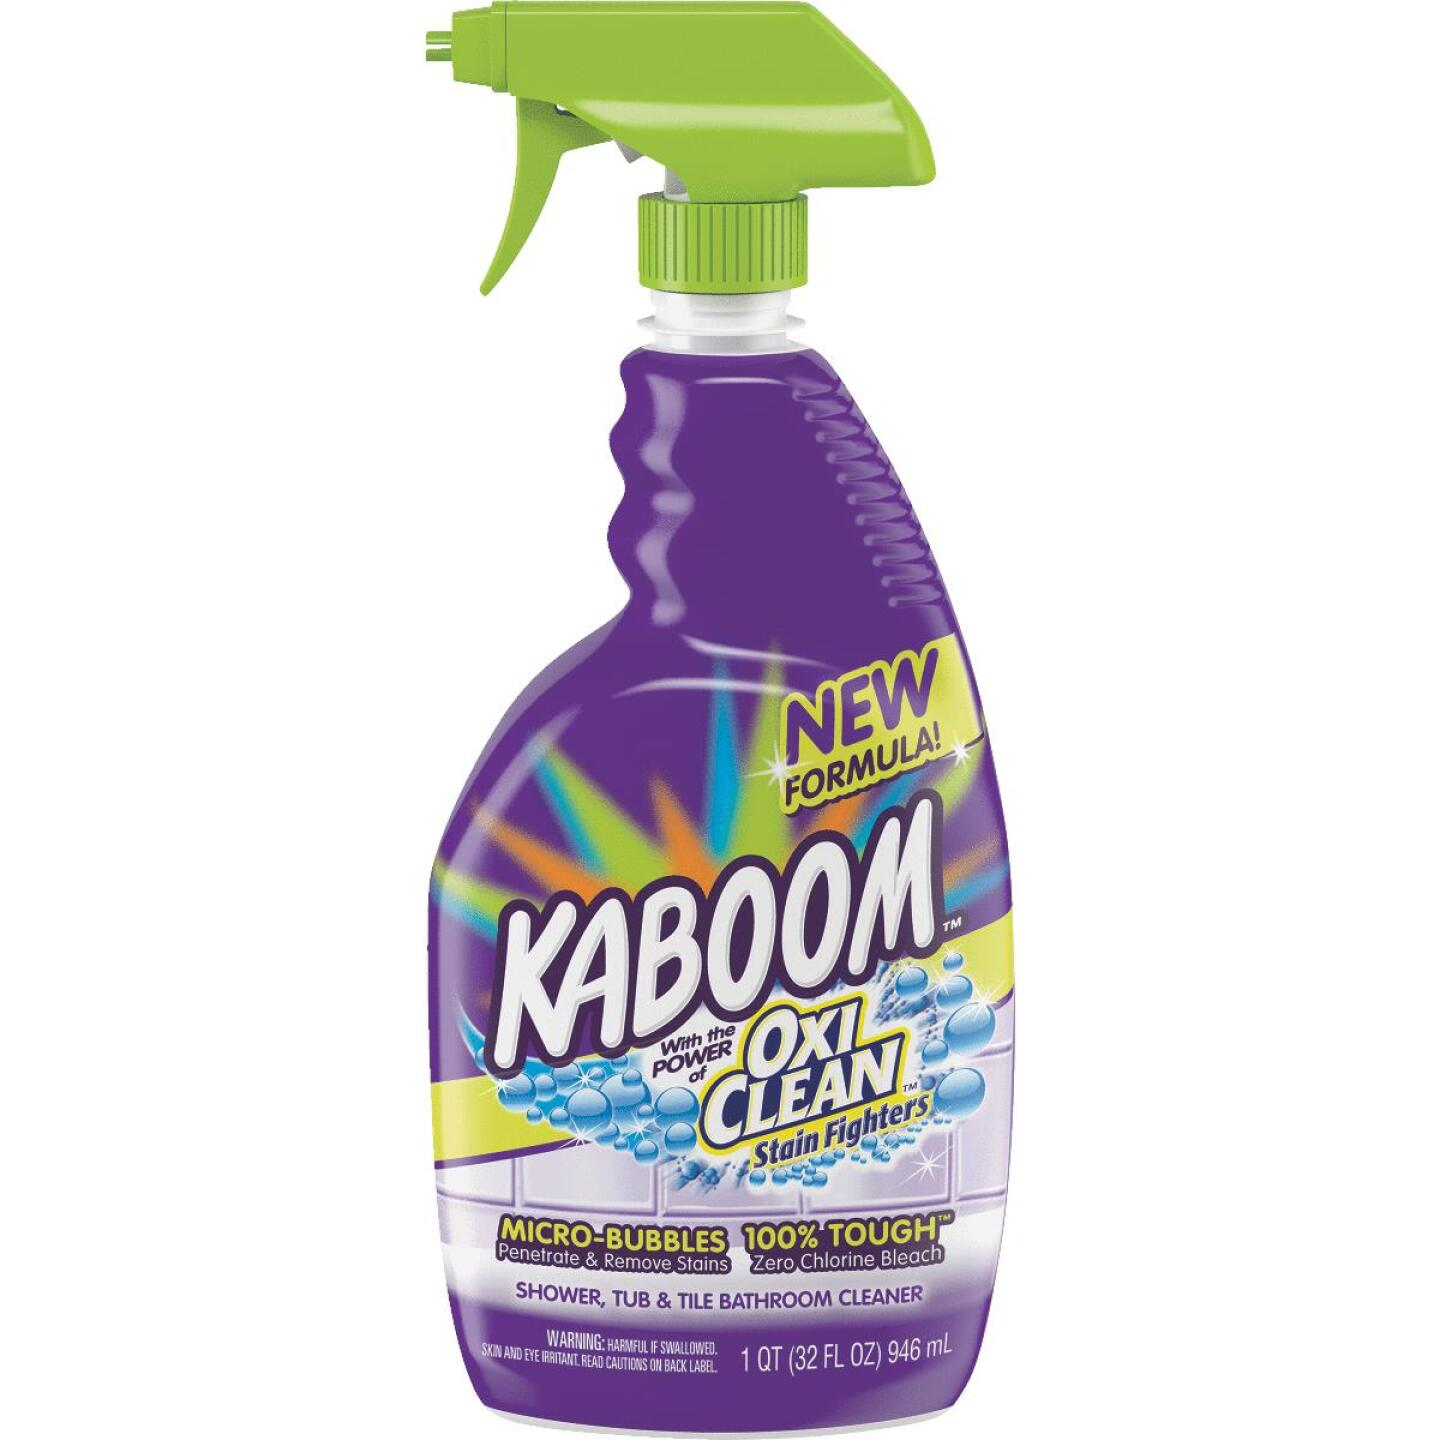 Kaboom 32 Oz. Shower Tub & Tile Bathroom Cleaner with OxiClean Image 1